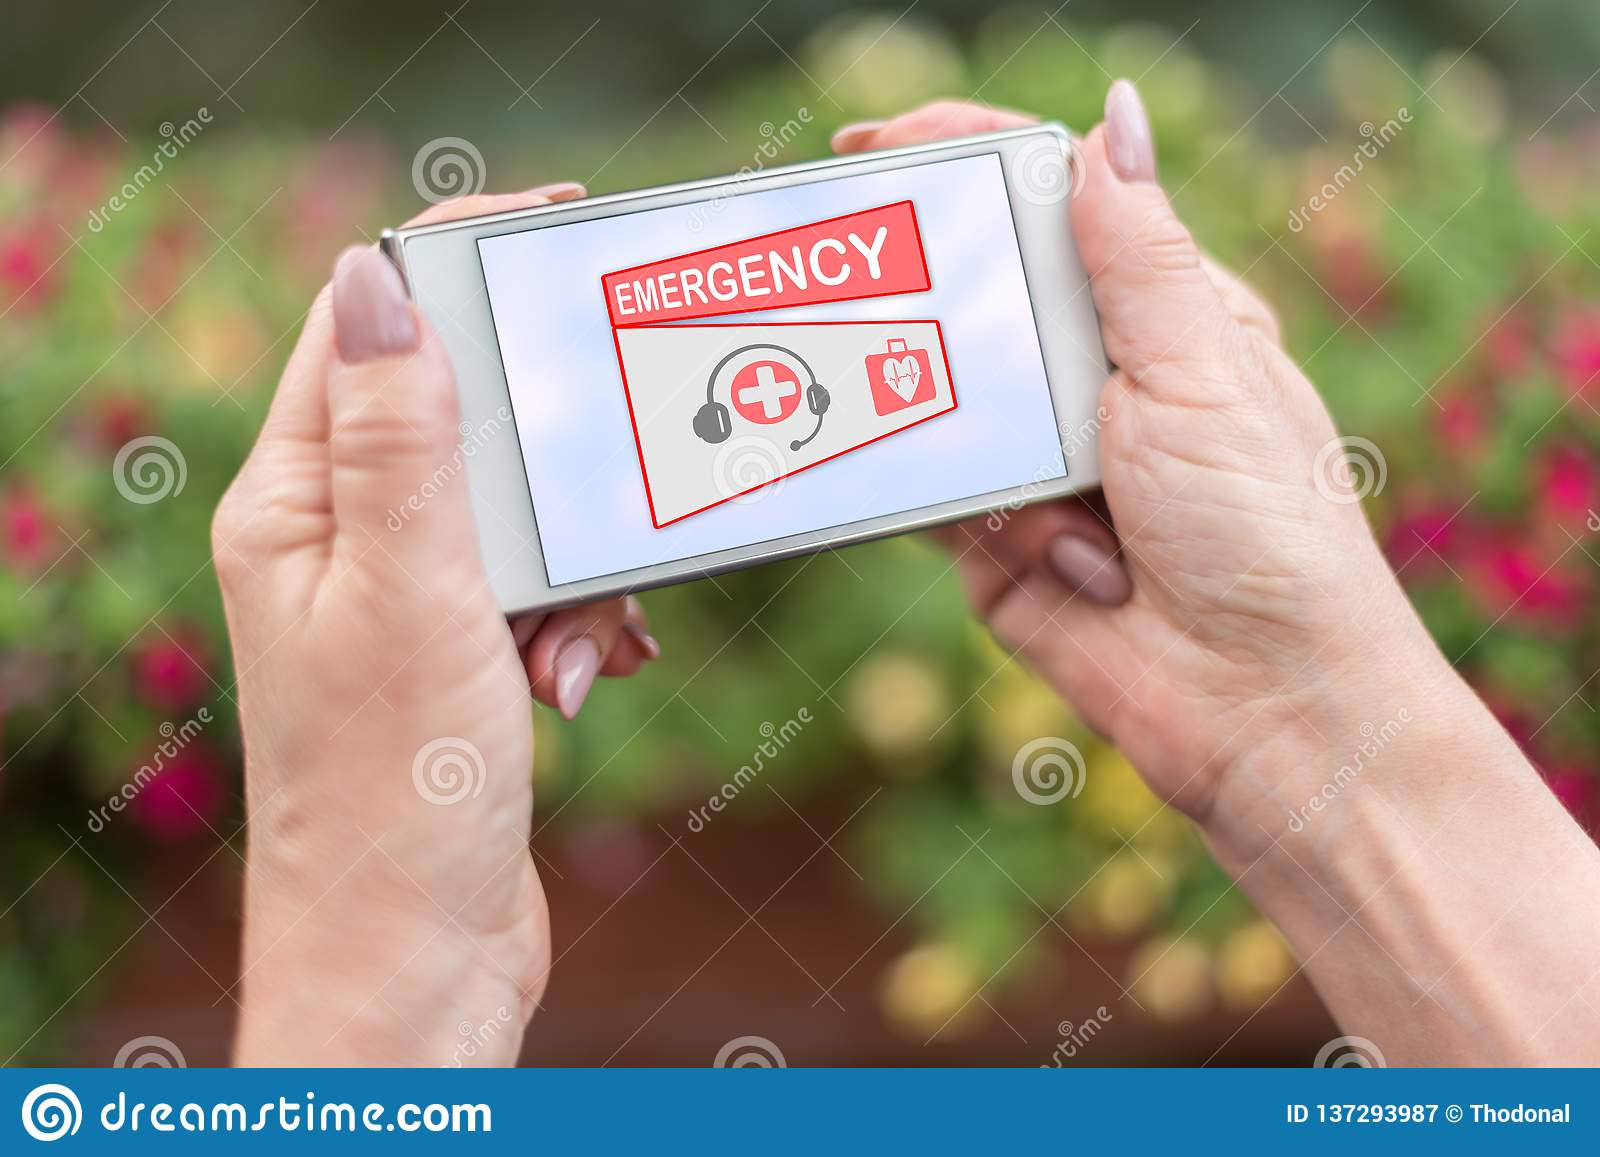 Emergency concept on a smartphone